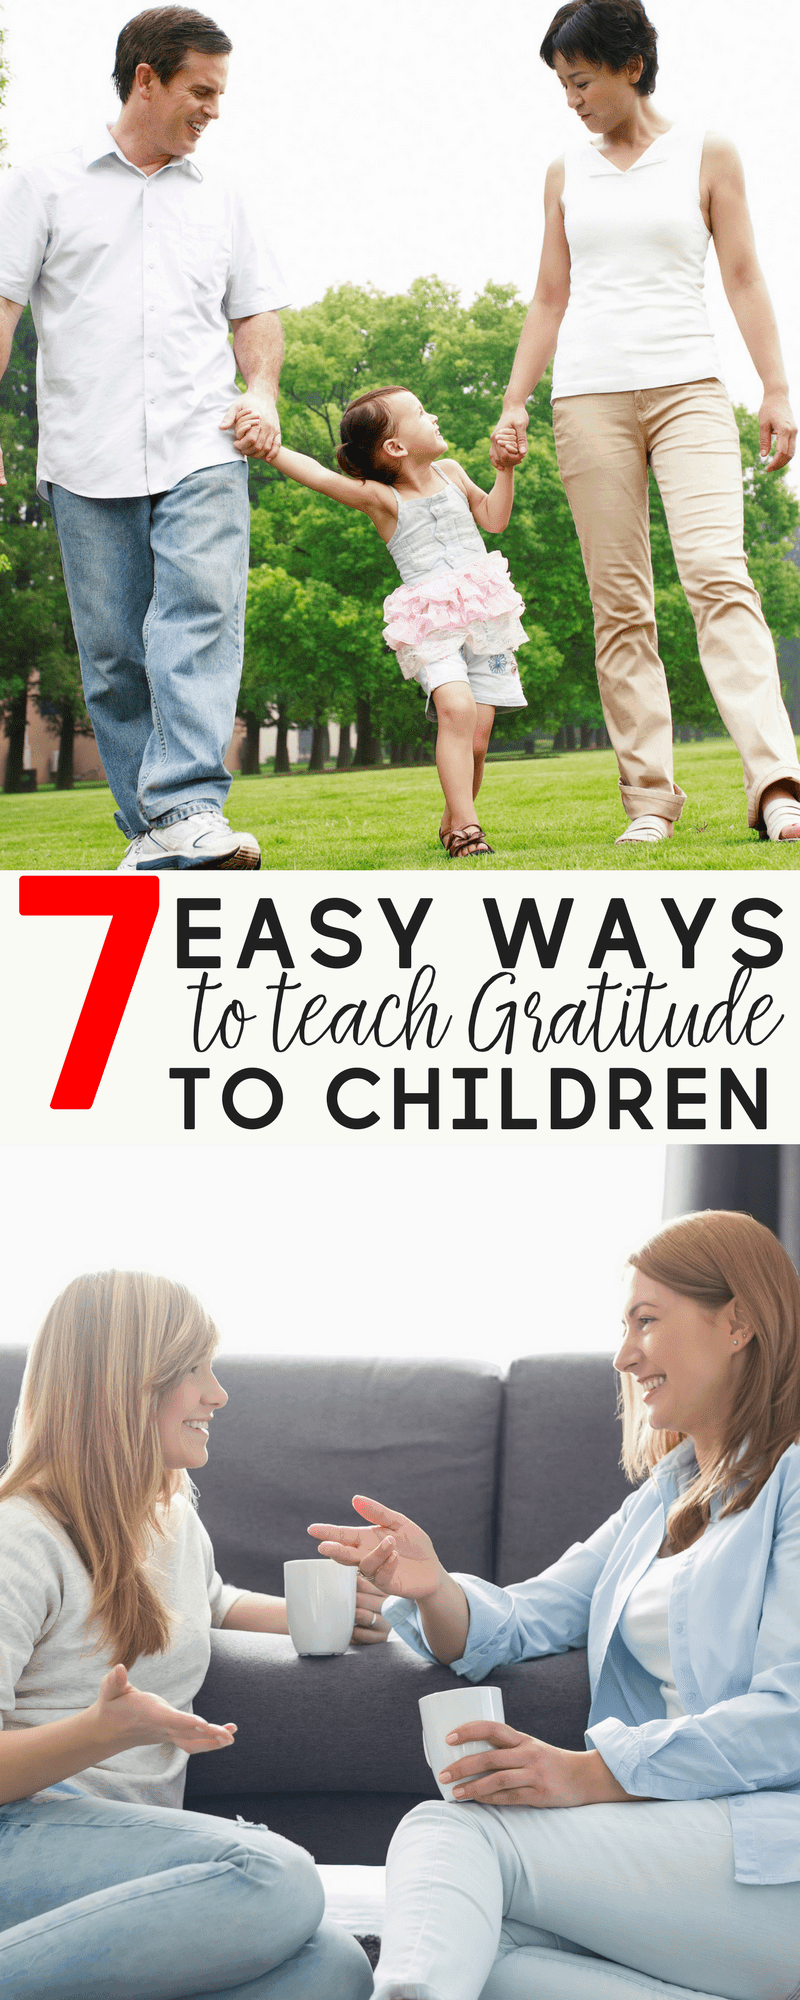 Are you trying to raise kids with character? Teach them gratitude. It's an attitude that is worth catching.